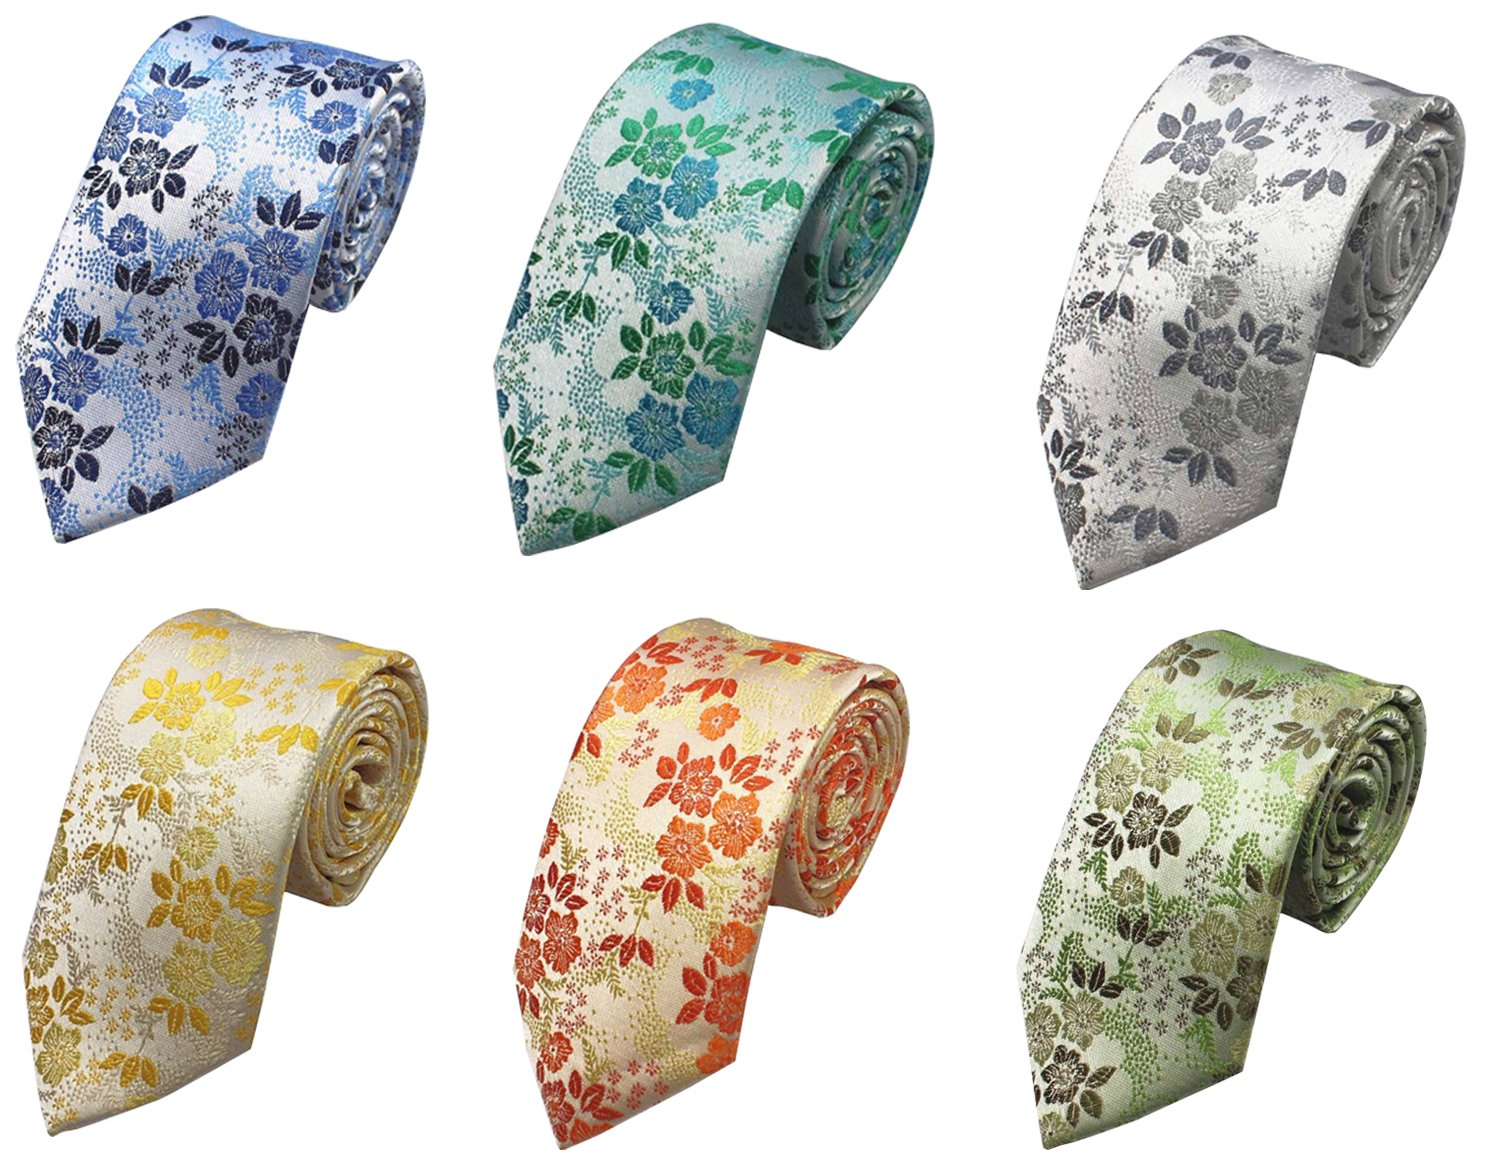 OUMUS 6 PCS Classic Men's Tie, Cotton Printed Floral Neck Tie, Great for Weddings, Groom, Groomsmen, Missions, Dances, Gifts.